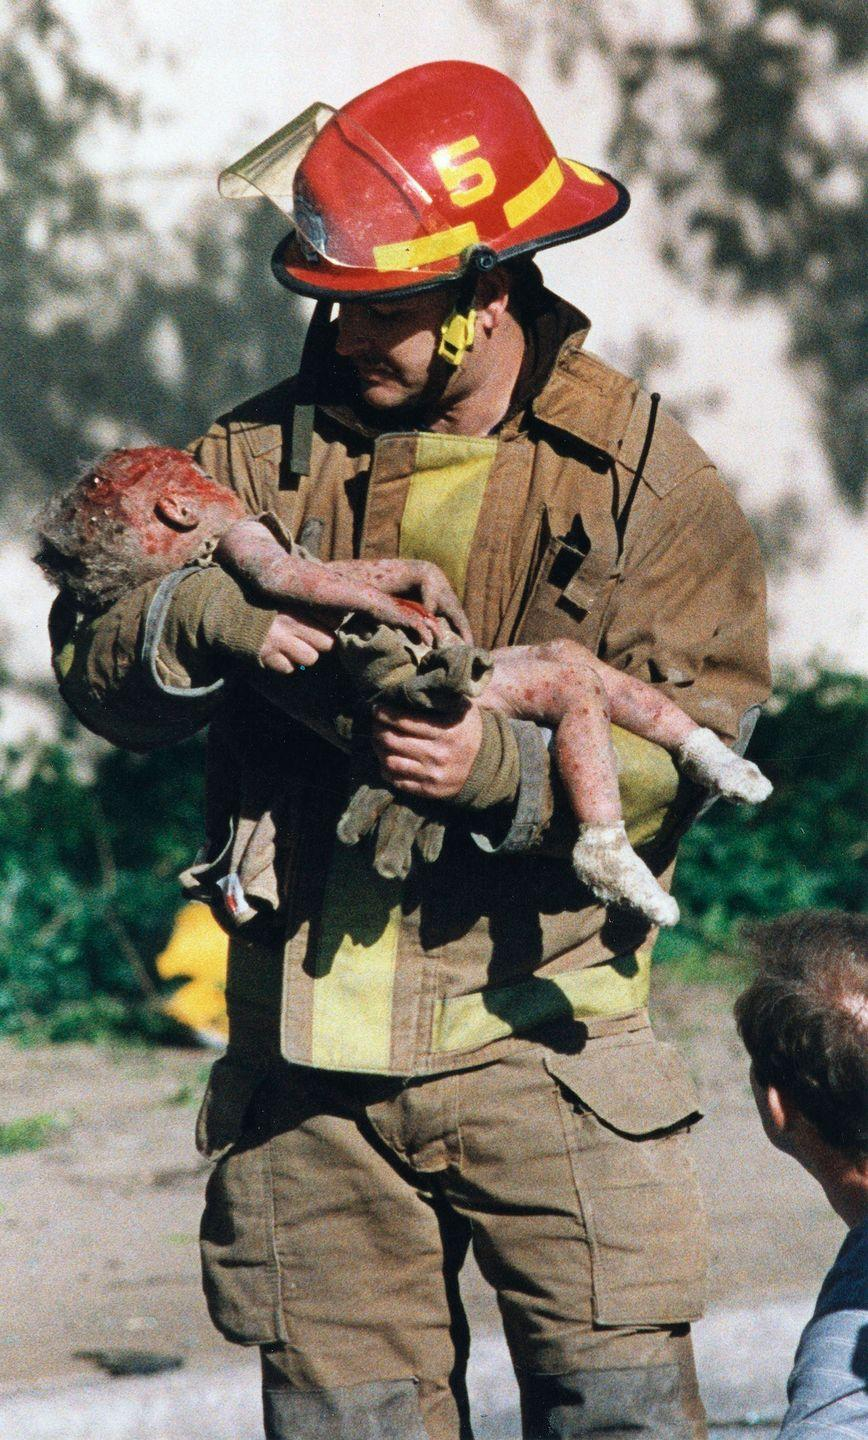 <p>1995. Firefighter Chris Fields carries Baylee Almon from the Alfred P. Federal Building in downtown Oklahoma City. Almon later died from her injuries sustained in the blast.</p>